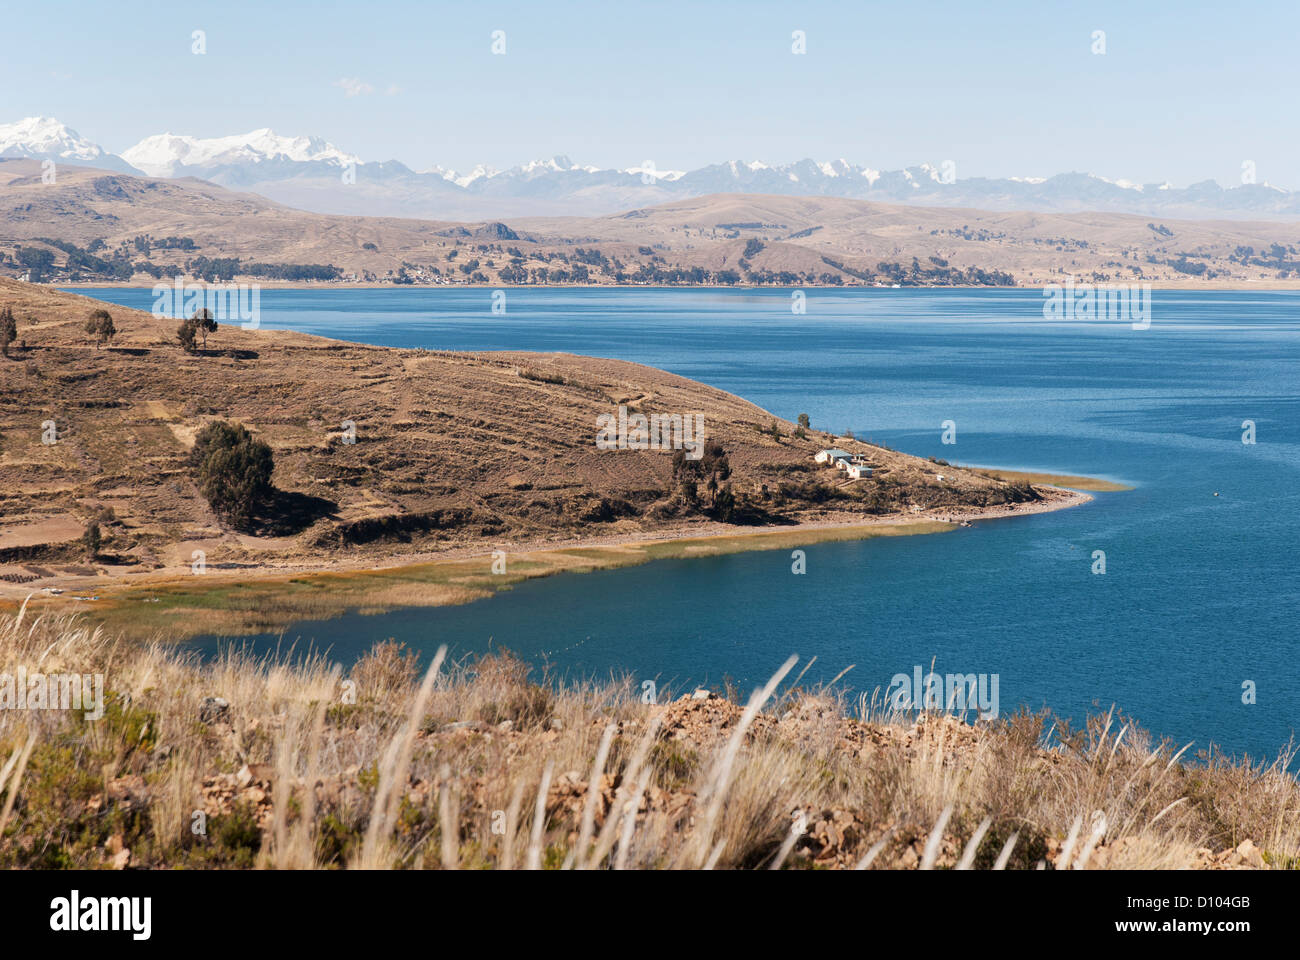 Lake Titicaca with Cordillera Real in the background - Stock Image